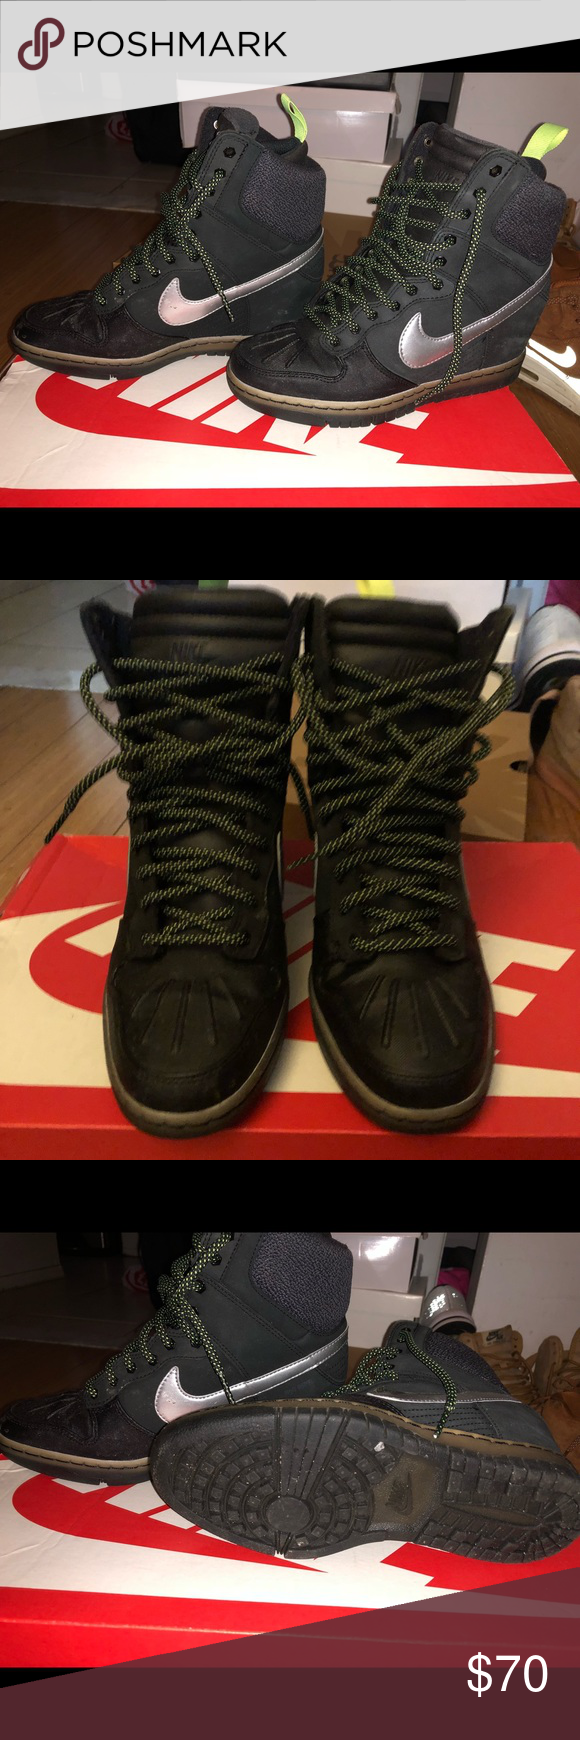 sports shoes 9da14 65c6f Womens Dunk Sky Hi Sneakerboot 2.0 Worn, great for rain or snow! Hidden  Wedge and super comfy and cozy. Reflective laces and swoosh Nike Shoes  Winter   Rain ...